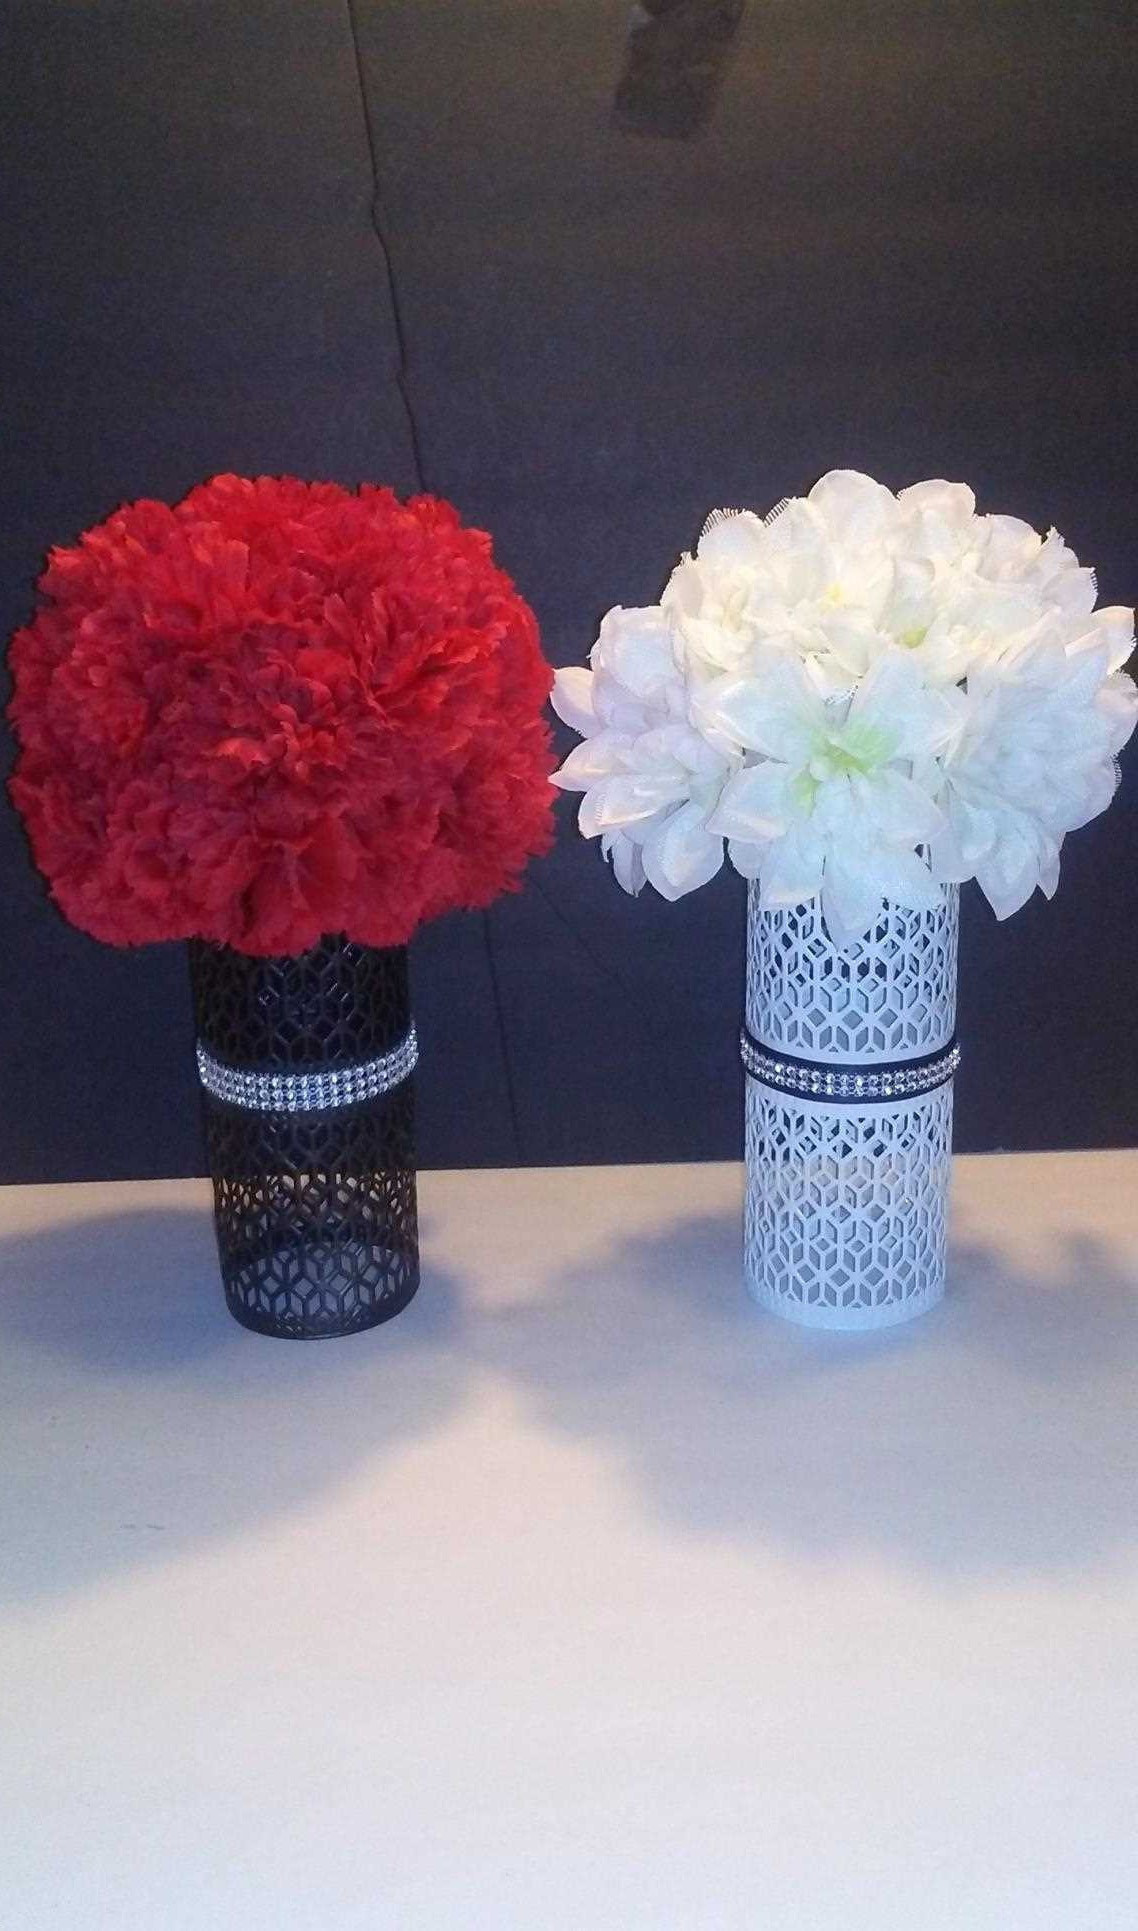 small red vase of 26 luxury wedding centerpieces ideas sokitchenlv inside wedding centerpieces ideas amazing dollar tree wedding decorations awesome h vases dollar vase i 0d of